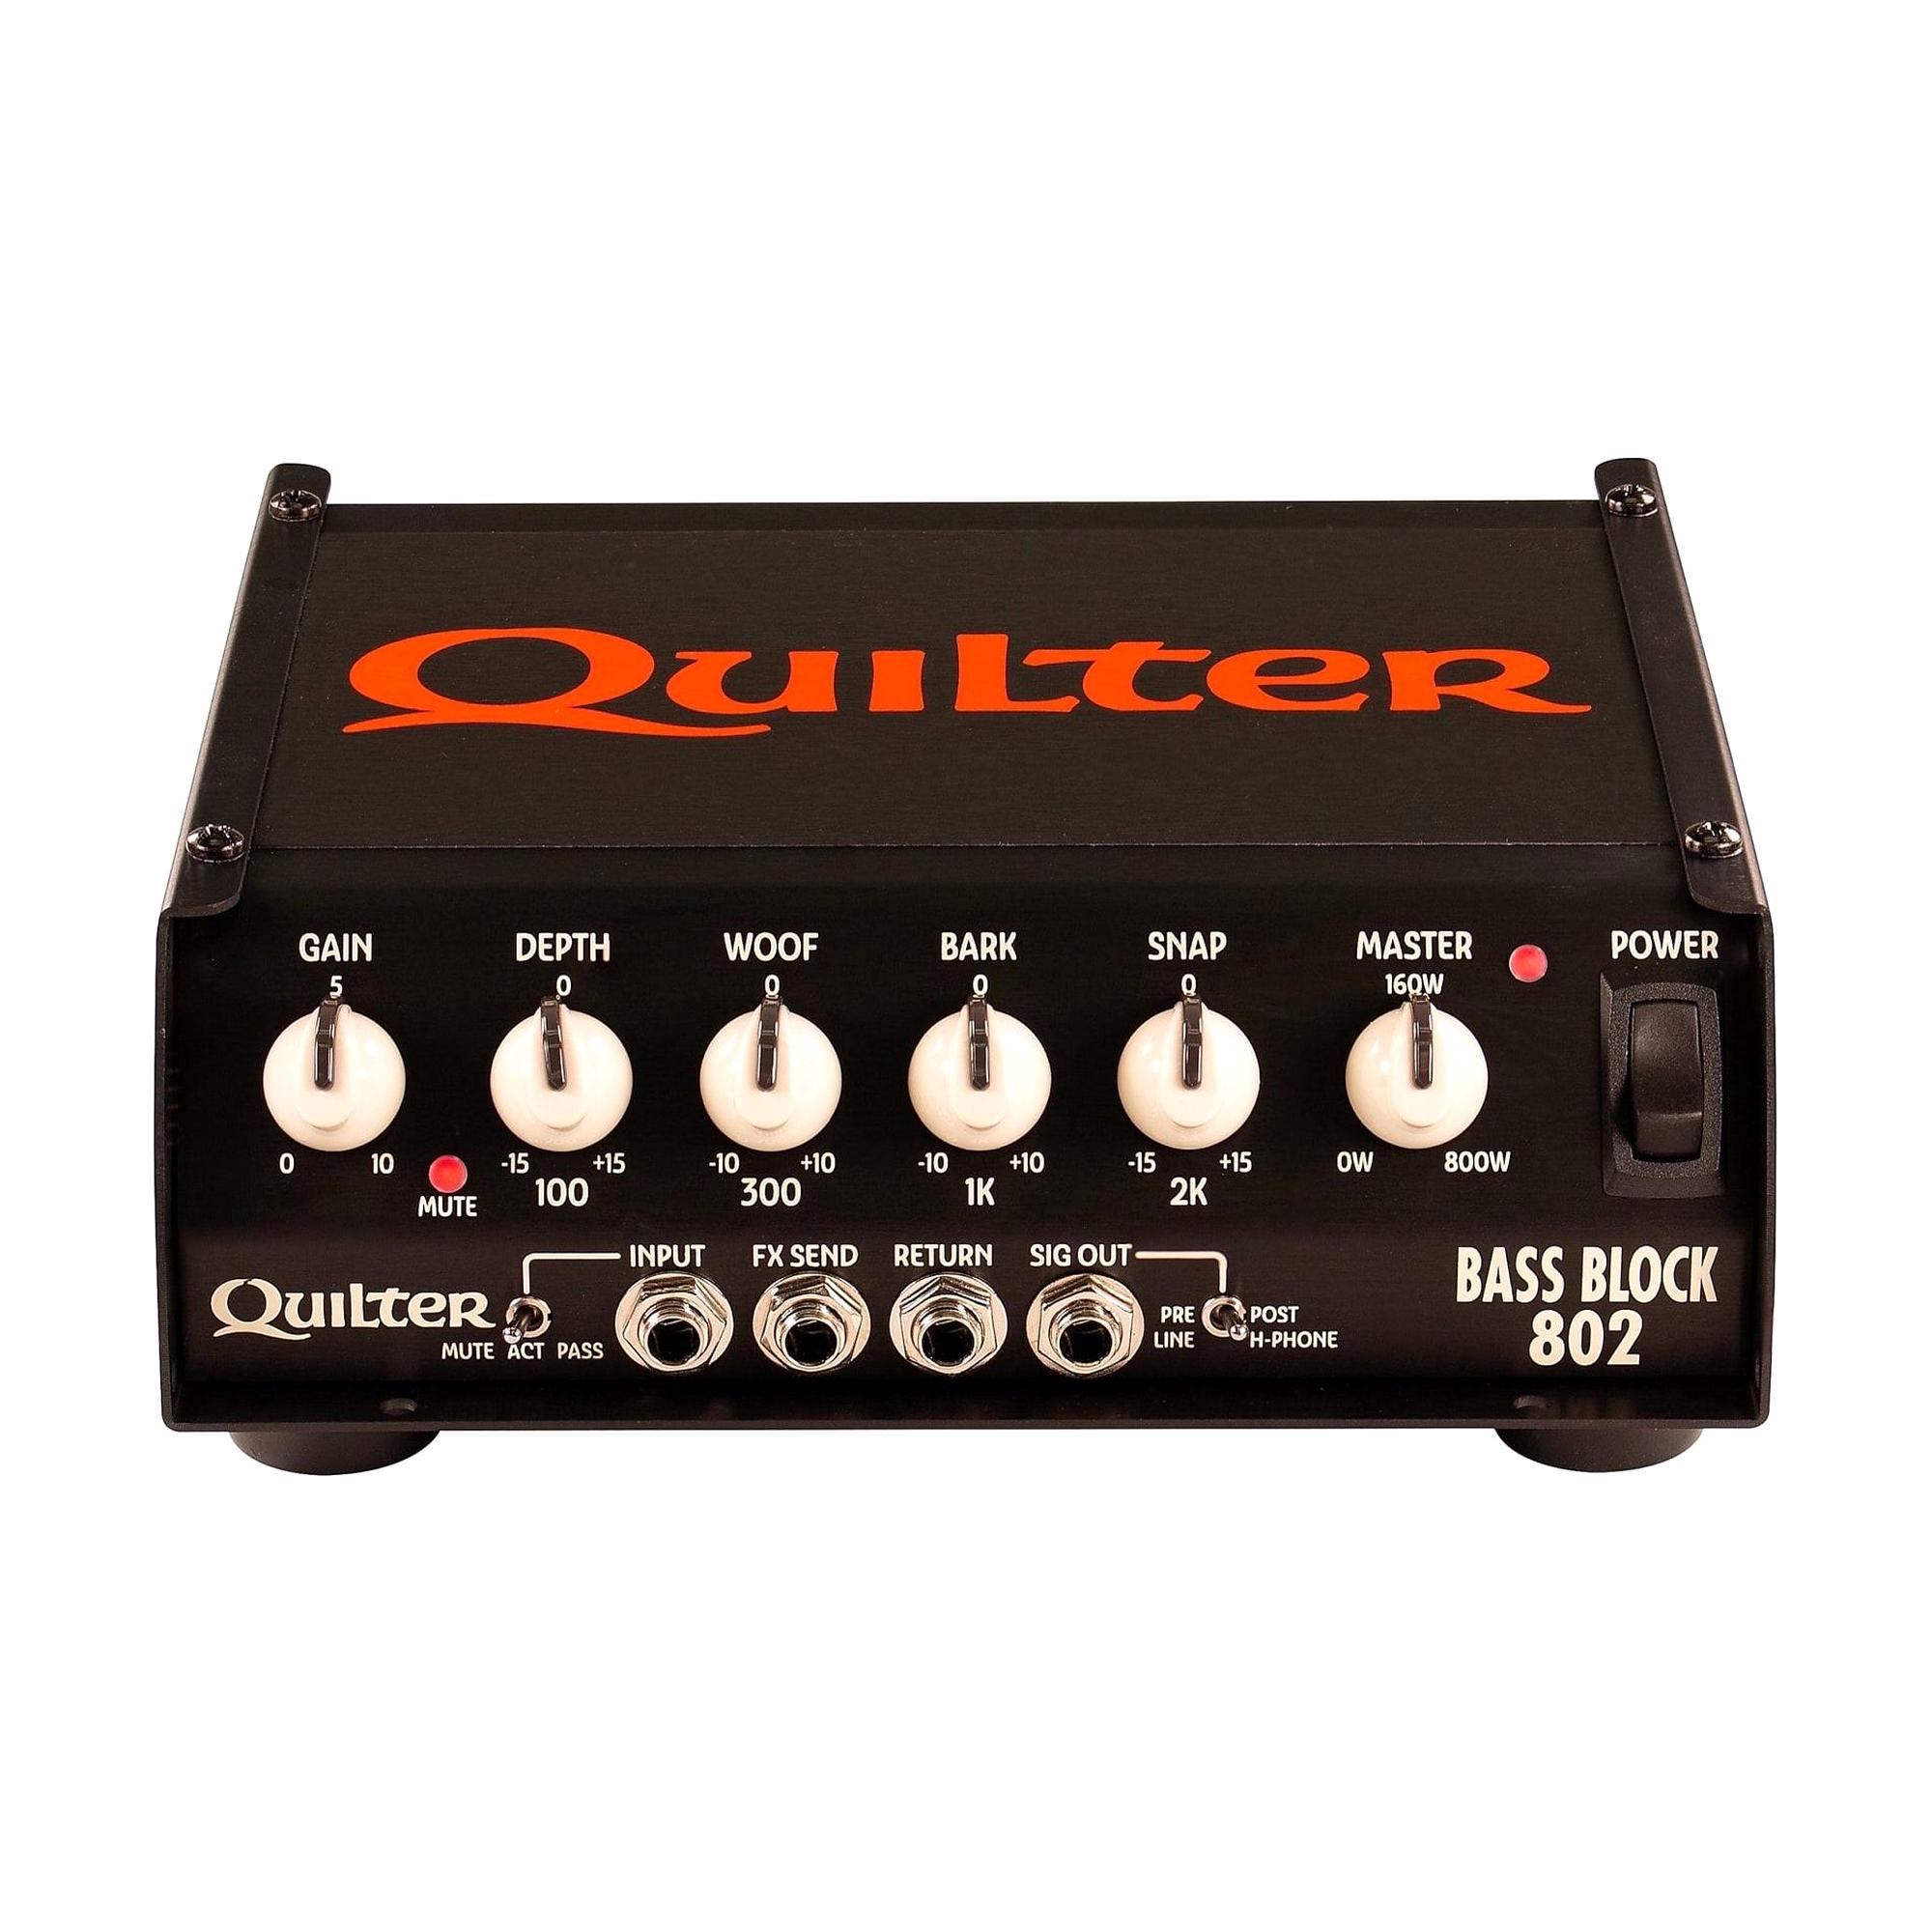 Quilter Labs Bass Block 802 Bass Amp Head